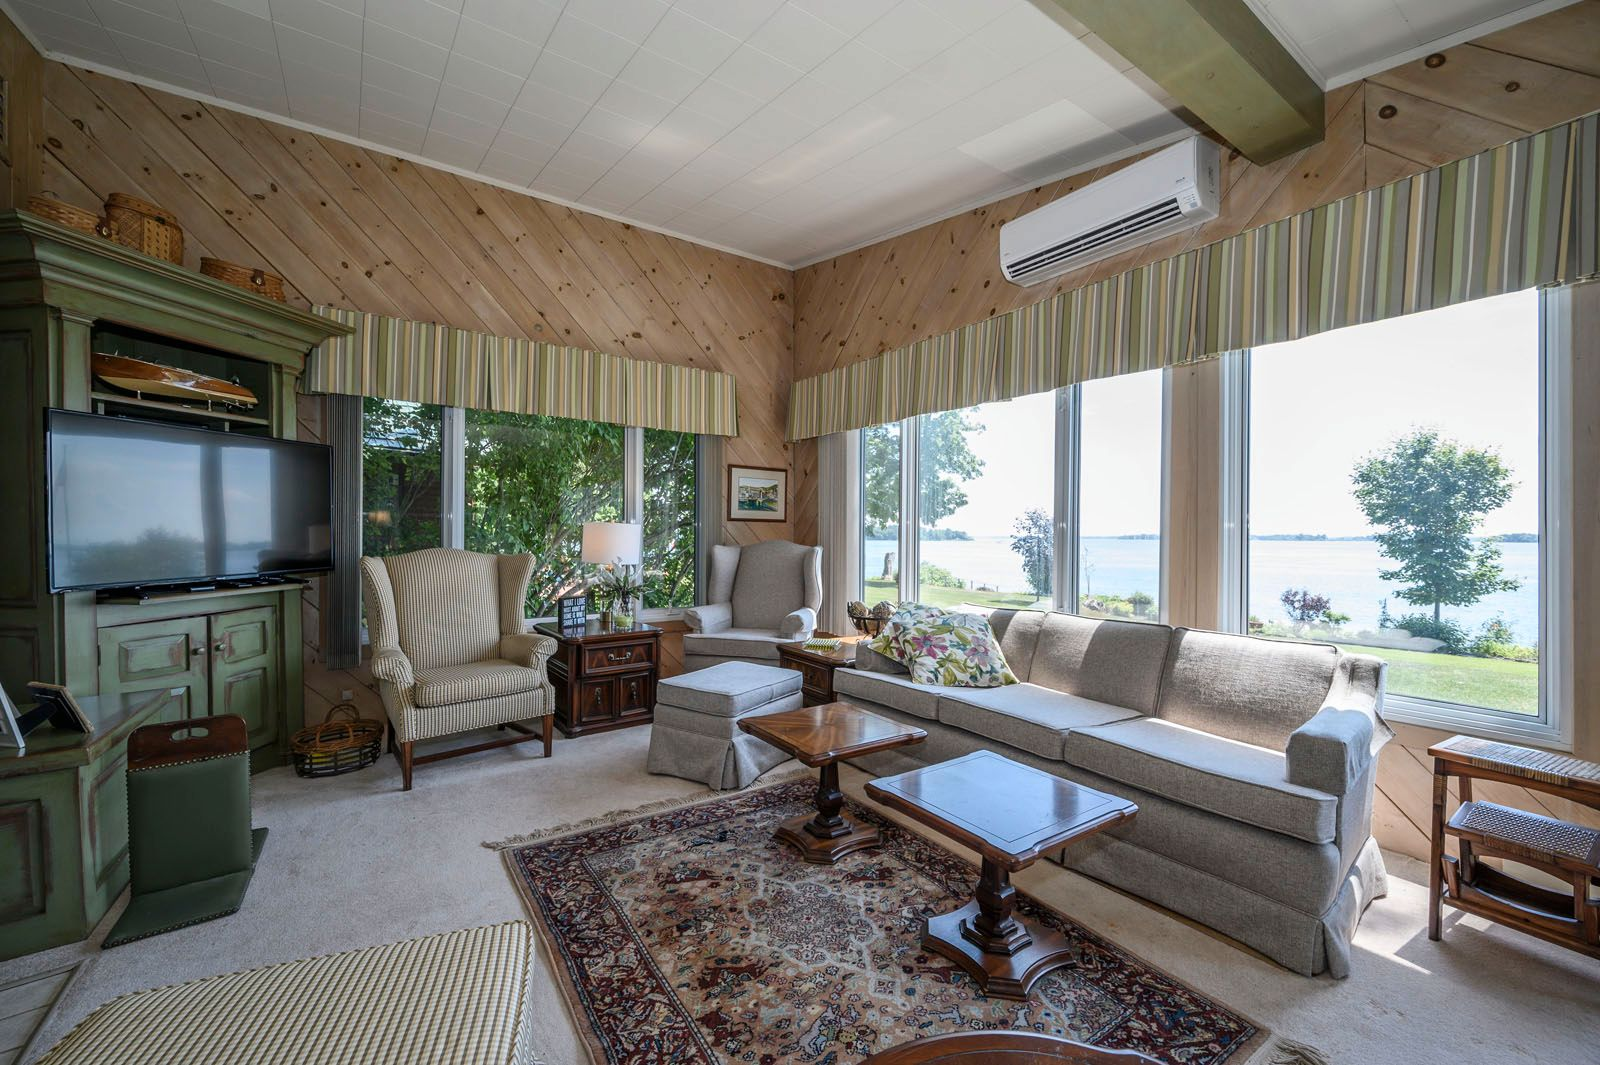 Photo 11: Photos: 54 Hamilton Island Road in Summerstown: Summerstown, ON Recreational for sale (St.Lawrence River)